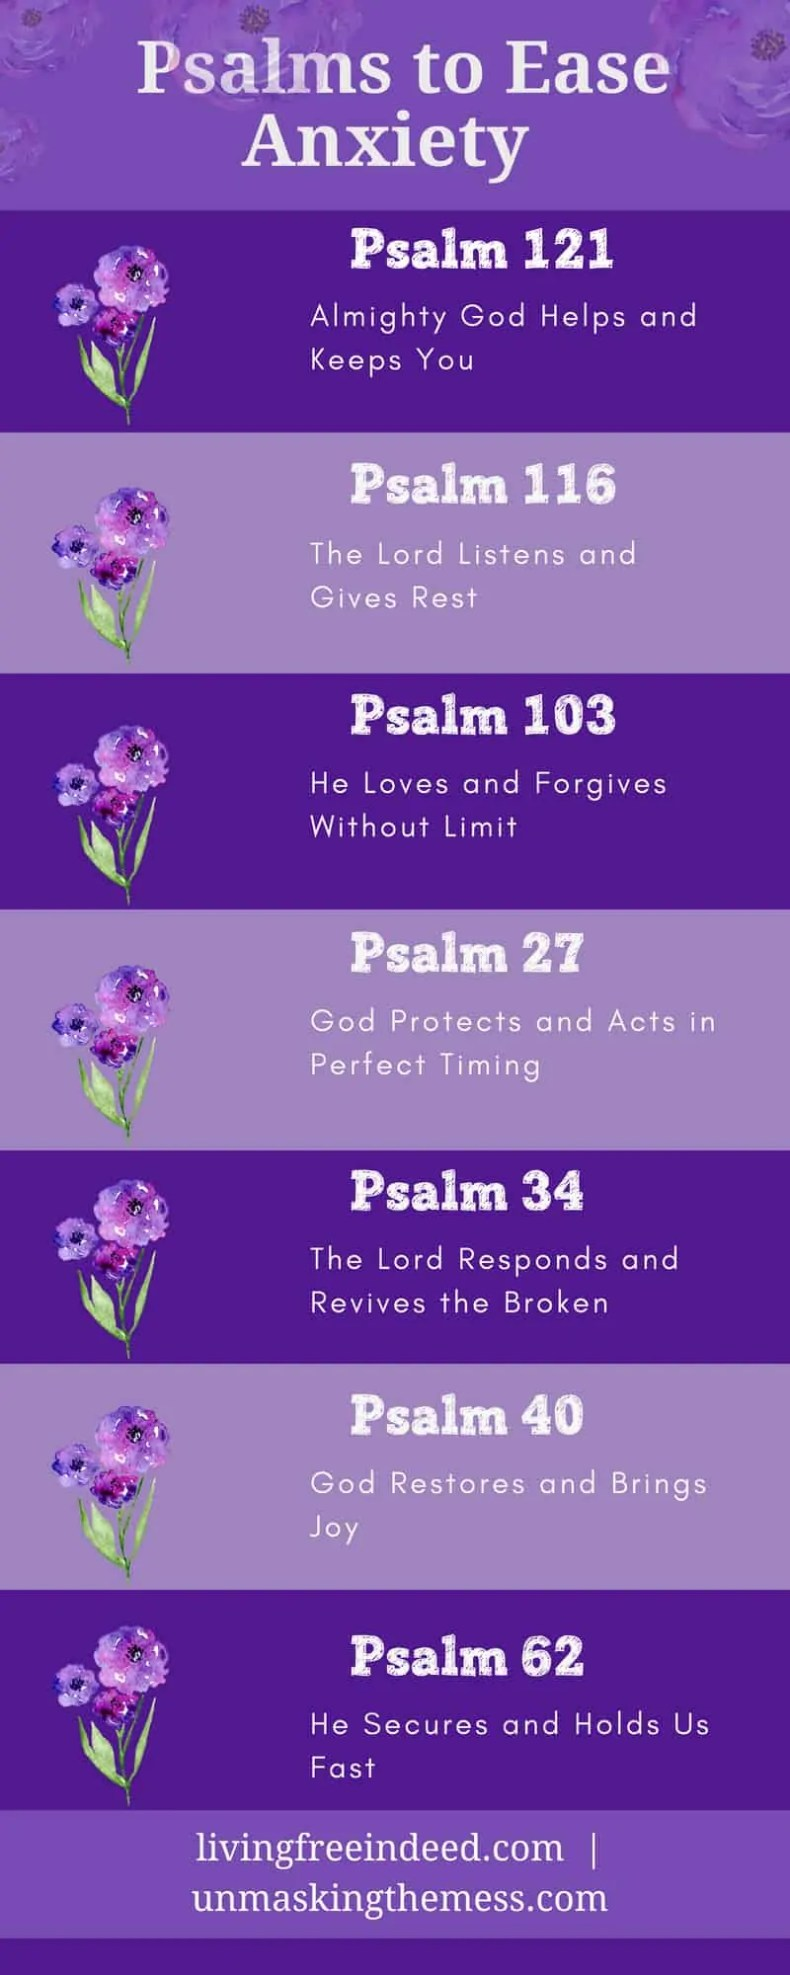 Want to Know 7 Psalms that are Powerful Anxiety Cures? This world is full of anxiety-producing problems. We can get bound up in anxiety or look for the anxiety cures God gives us in the Bible. #relief #tips #overcominganxiety #faith #christian #livingvictoriouslywithanxiety